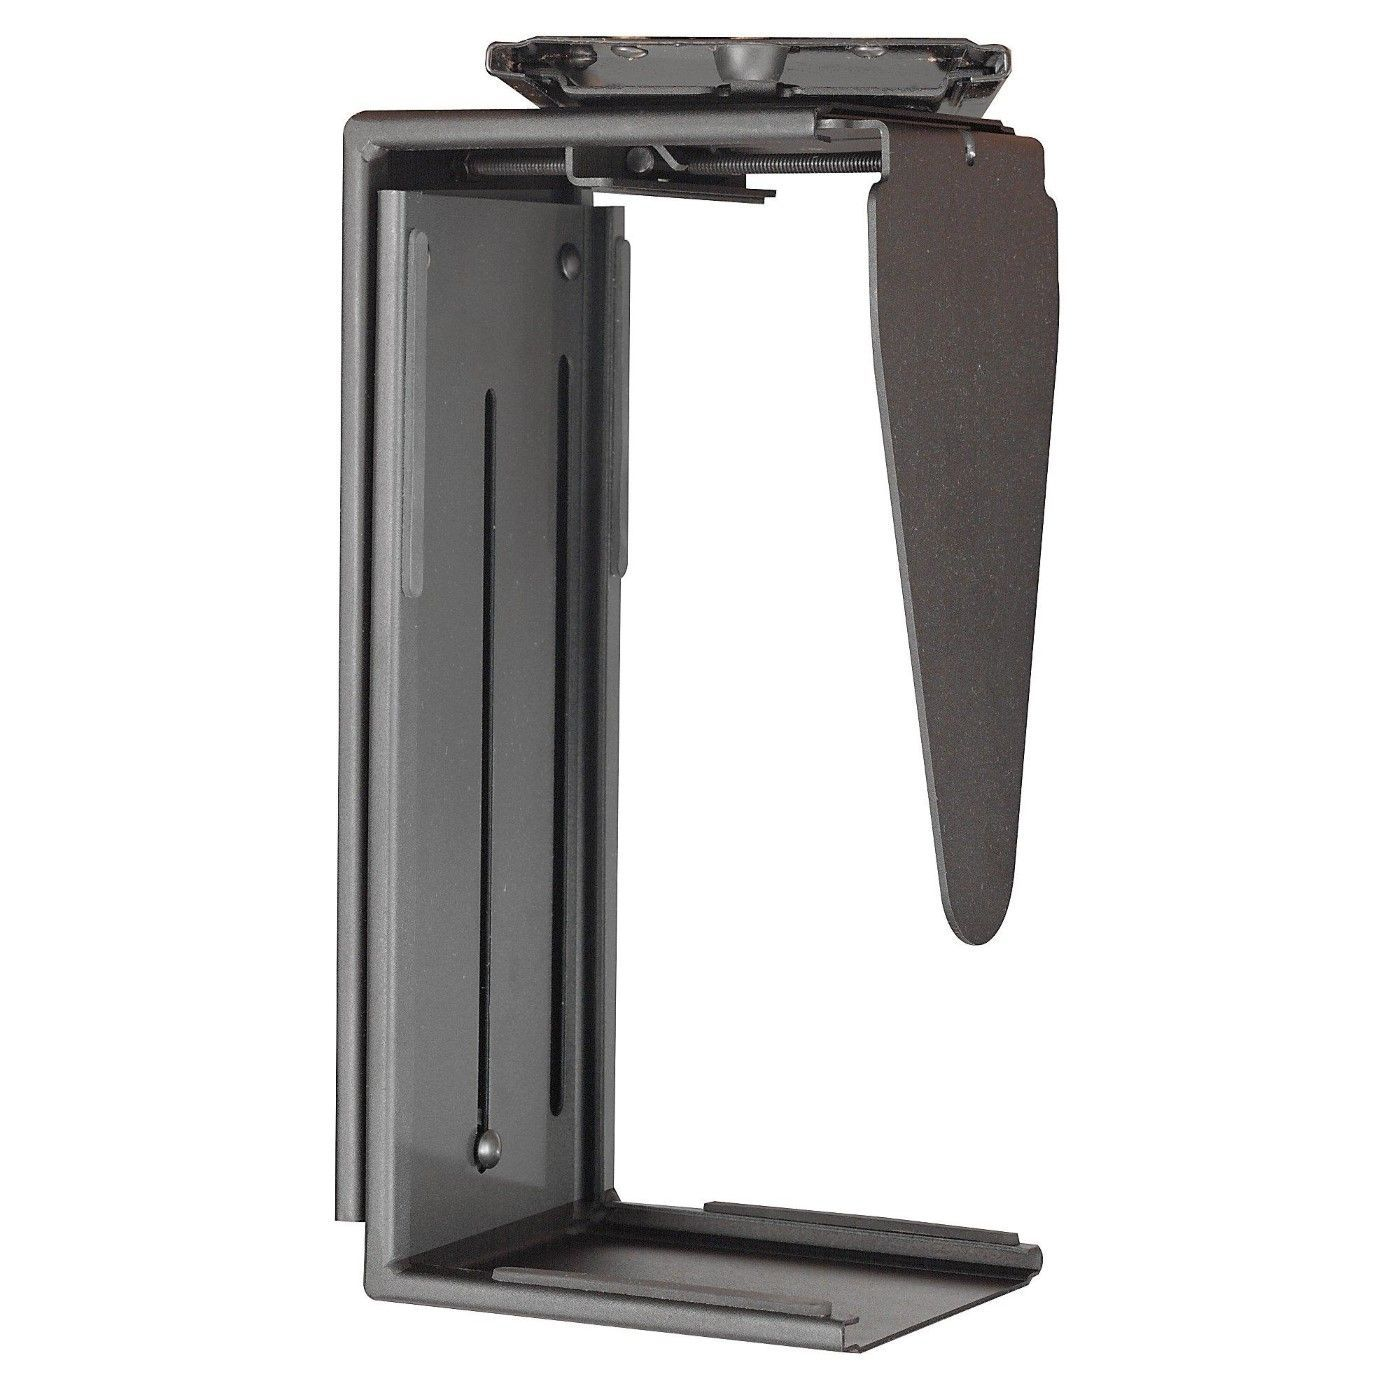 <font color=#c60><b>BUSH BUSINESS FURNITURE CPU HOLDER. FREE SHIPPING</font></b></font></b>